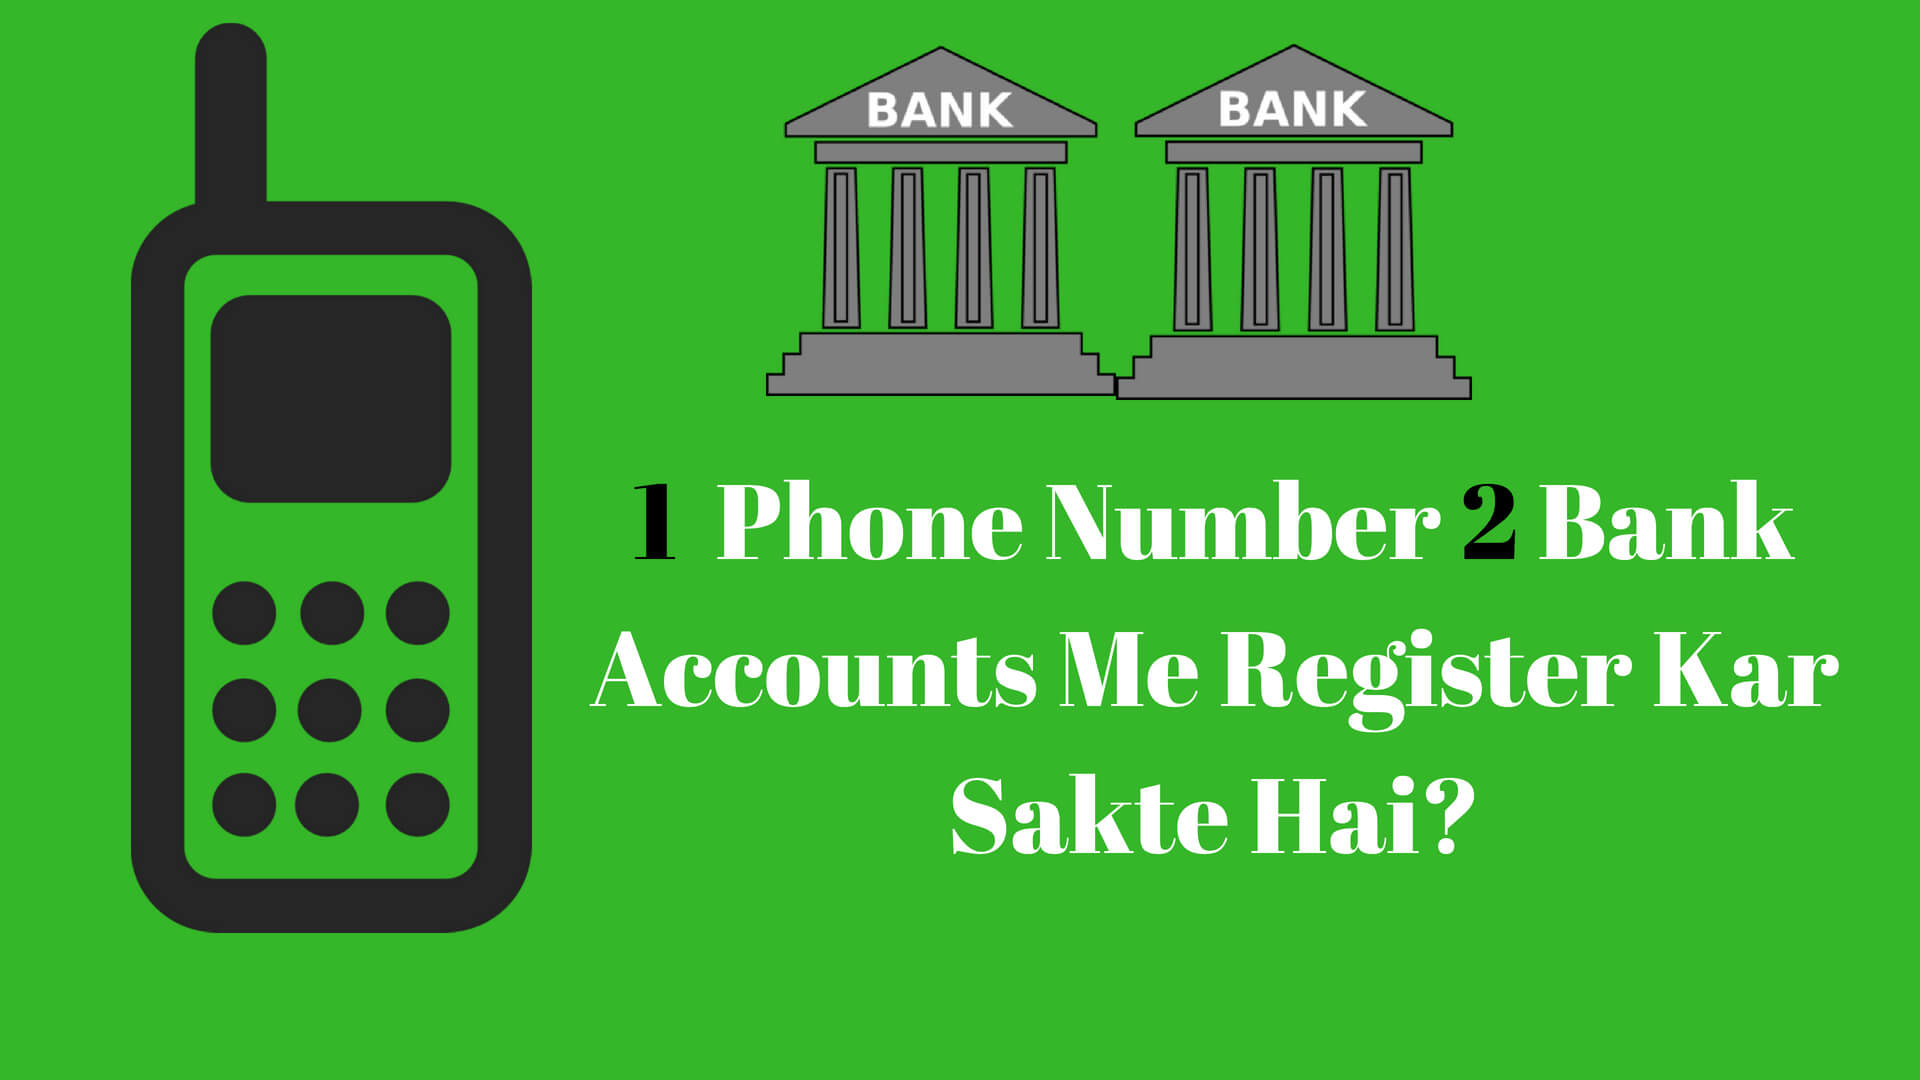 Same Phone Number 2 Bank Accounts